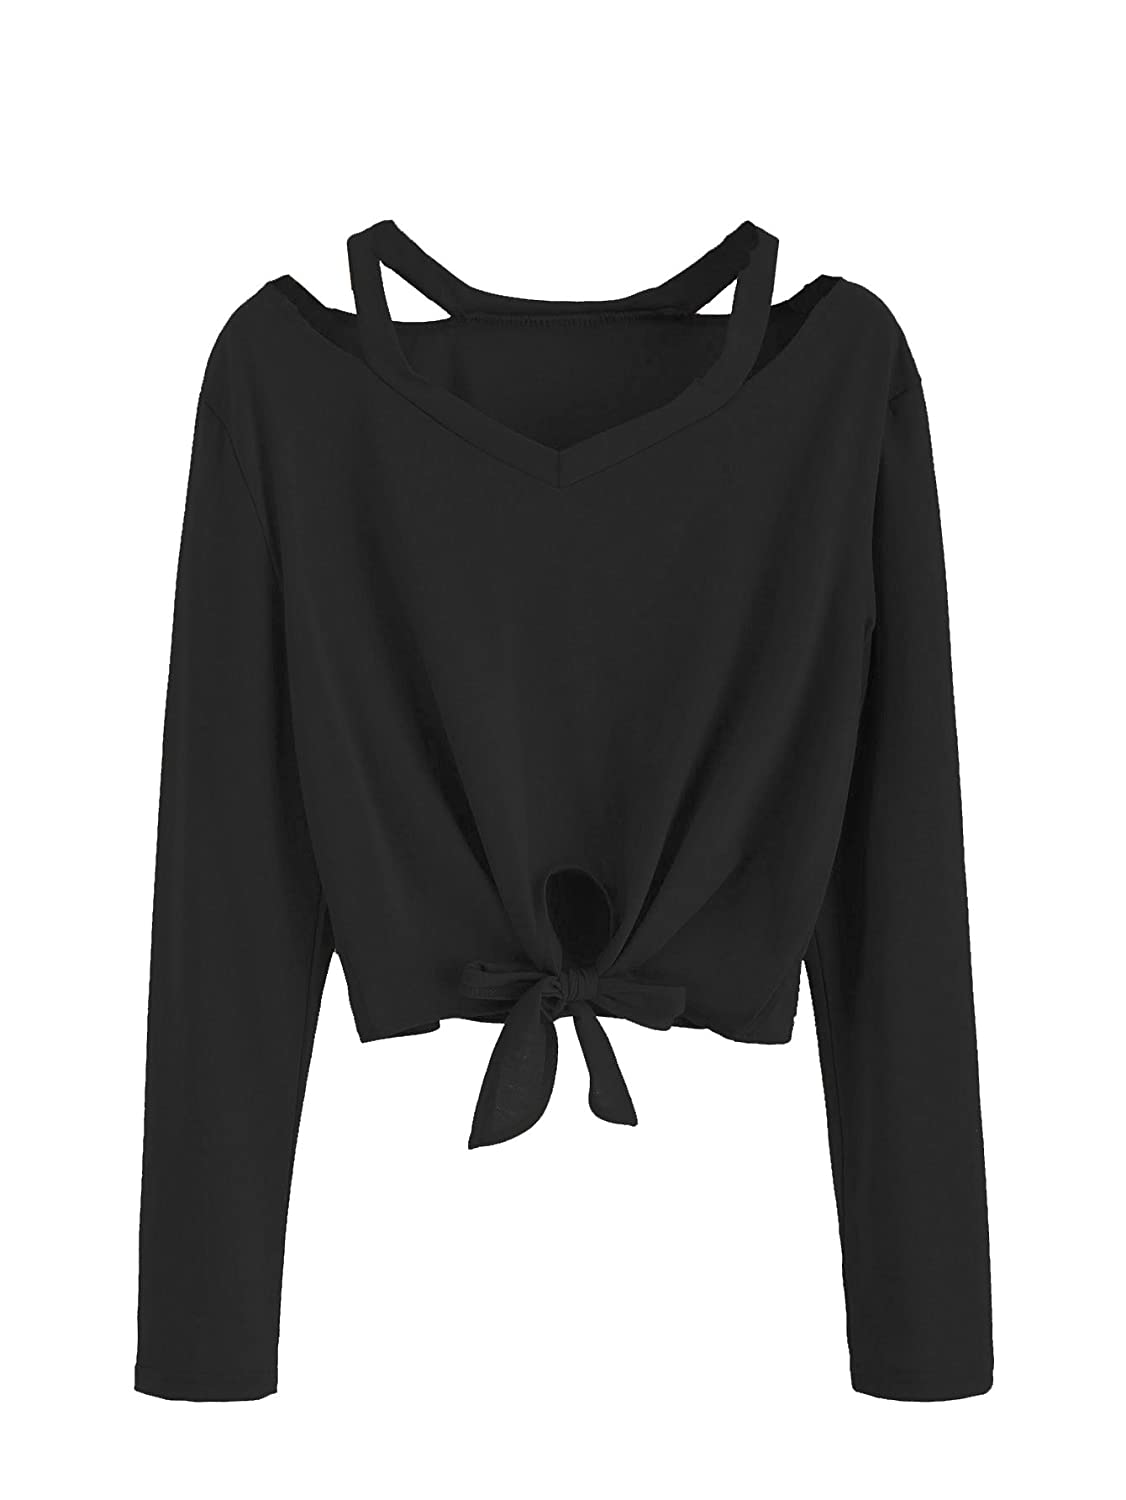 2black SweatyRocks Women's Crop TShirt Tie Front Long Sleeve Cut Out Casual Blouse Top